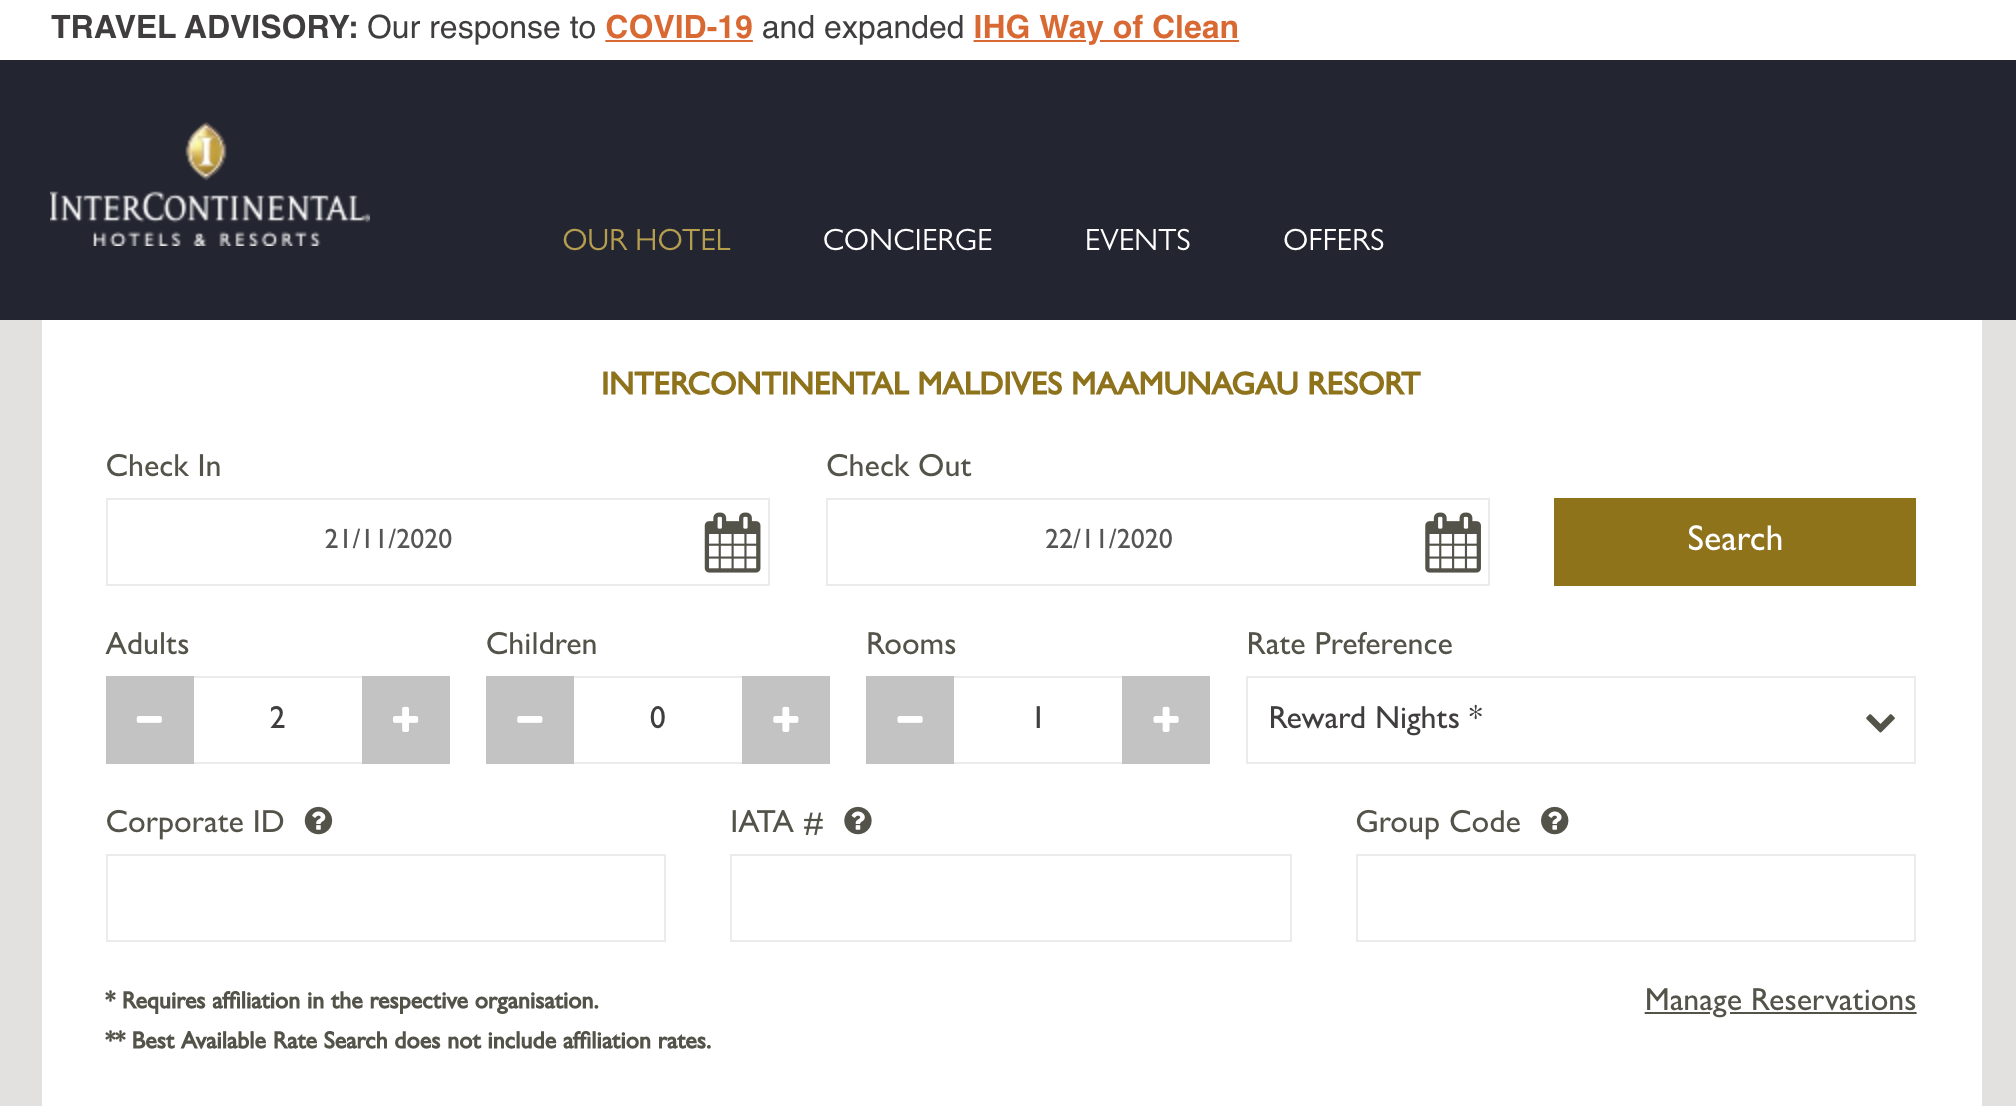 search ihg maldives - AMAZING DEAL - $500 a night water villa with pool at the Intercontinental Maldives!